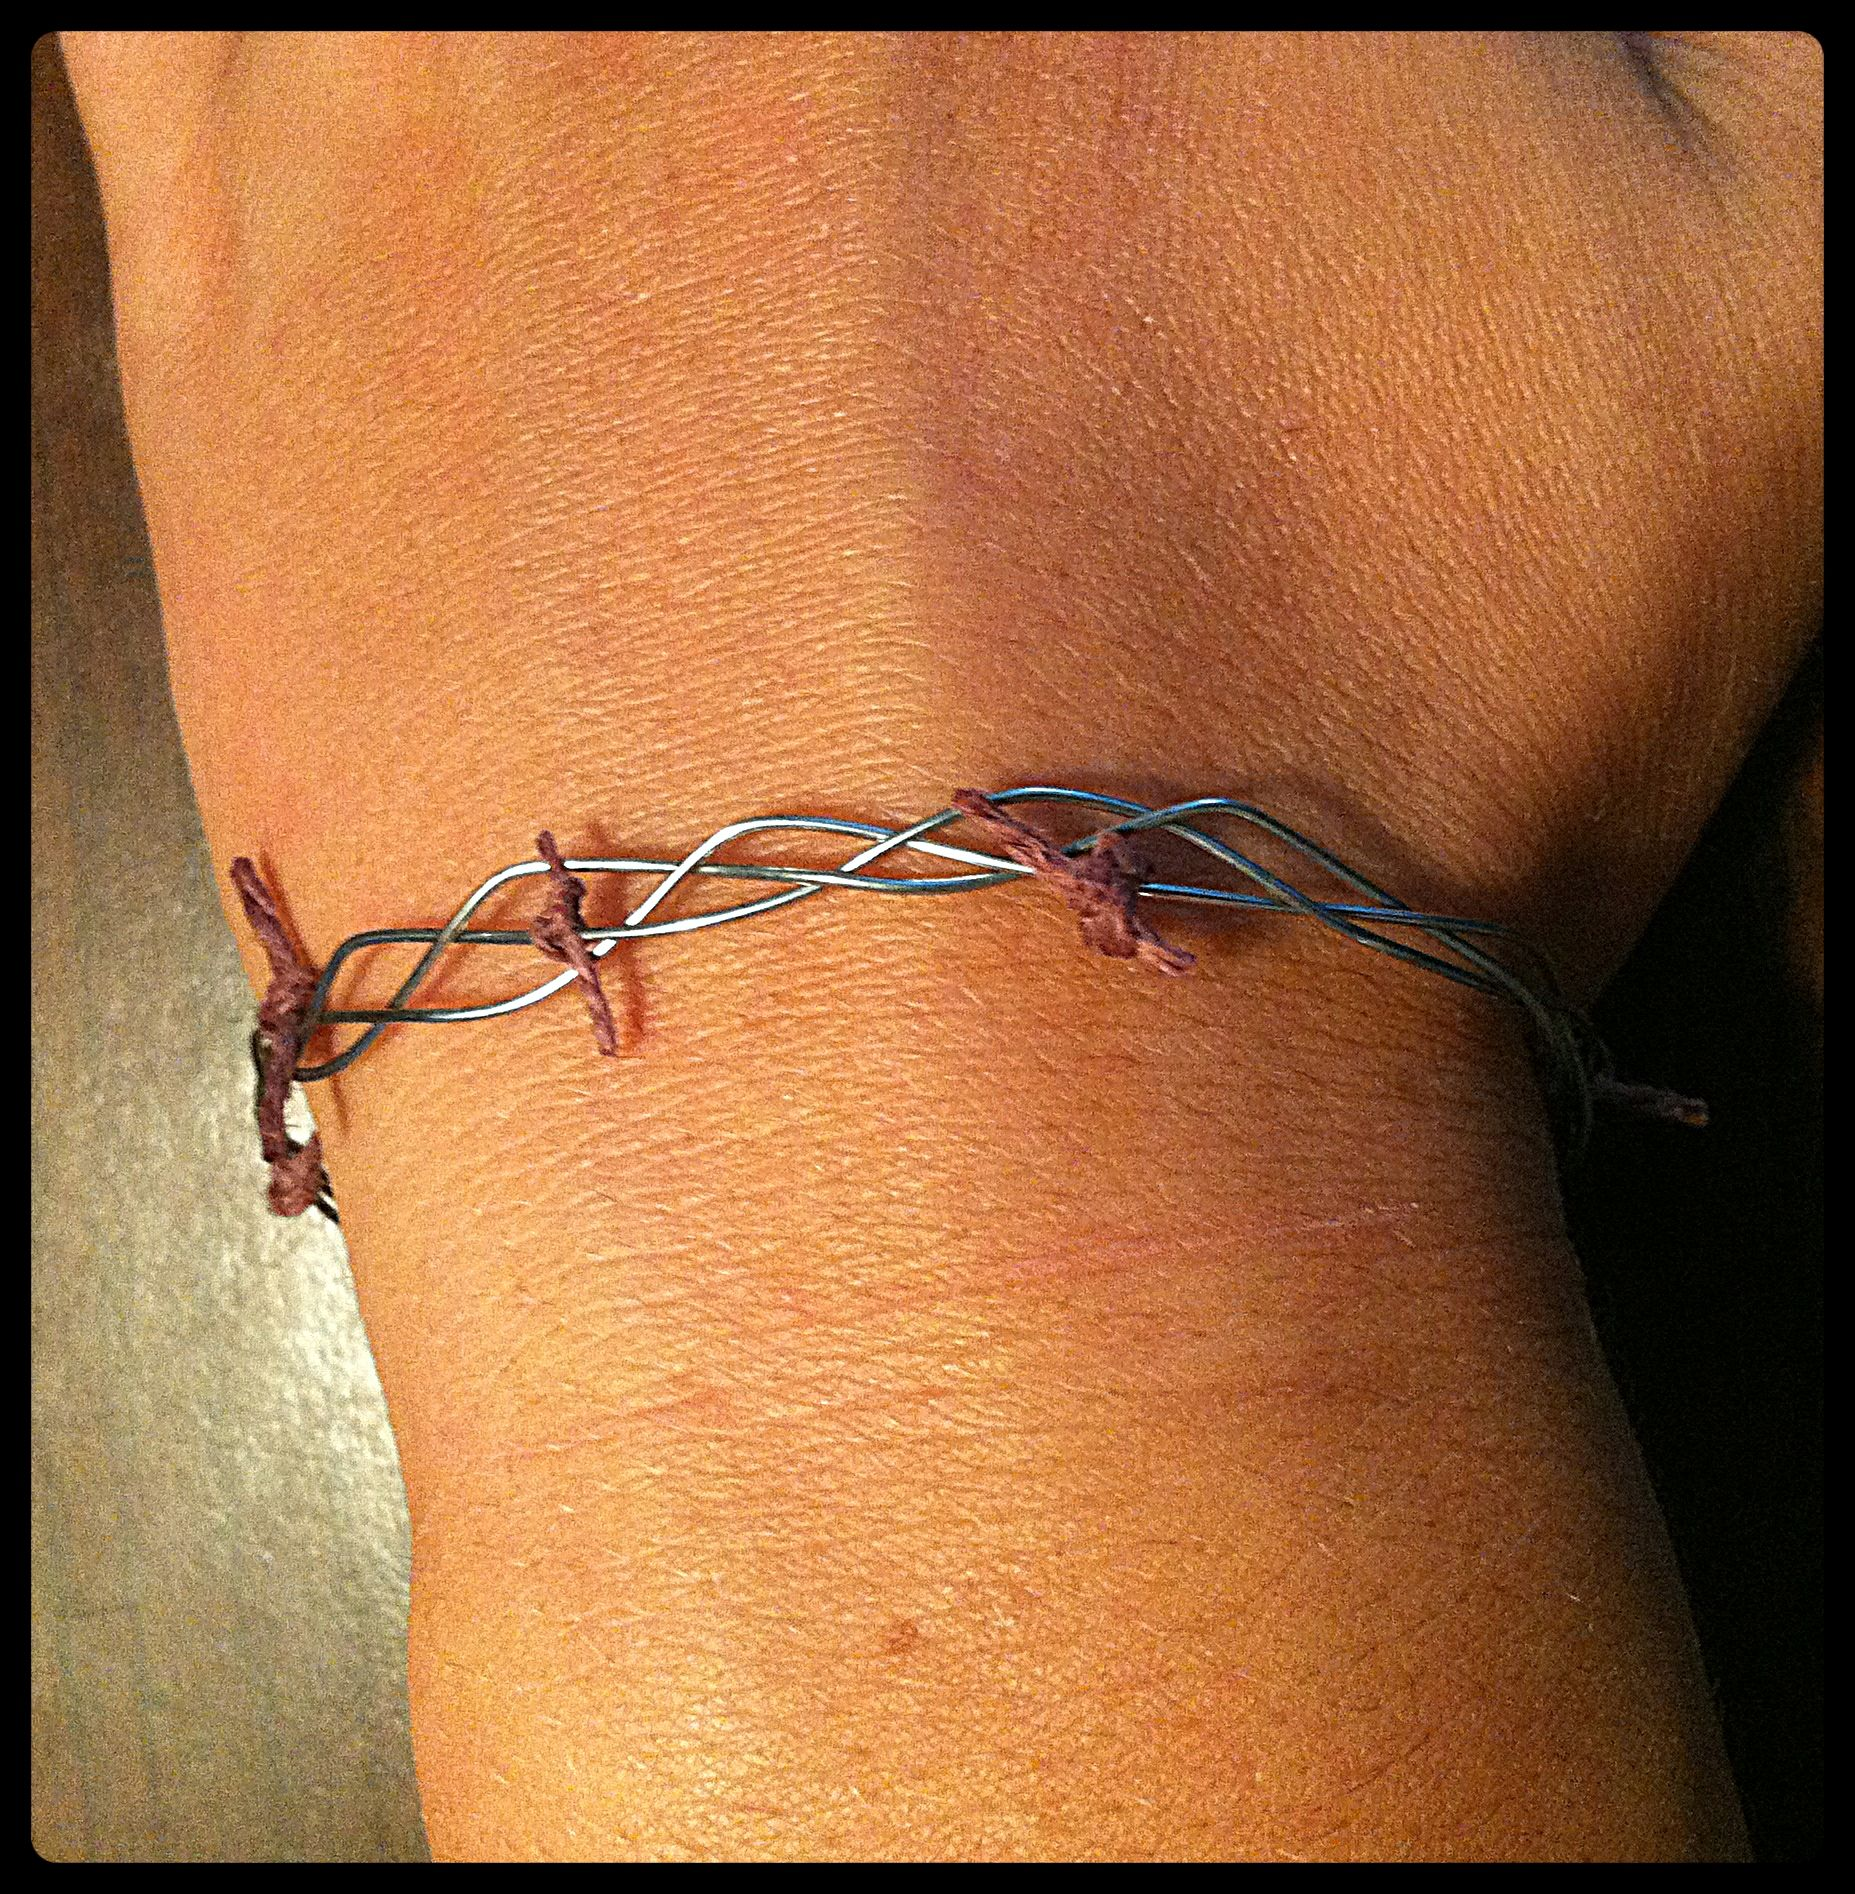 Crown Of Thorns Bracelet Craft I Think All My Kids Would Find This Cool To Wear And It Is A Great Reminder For The Season